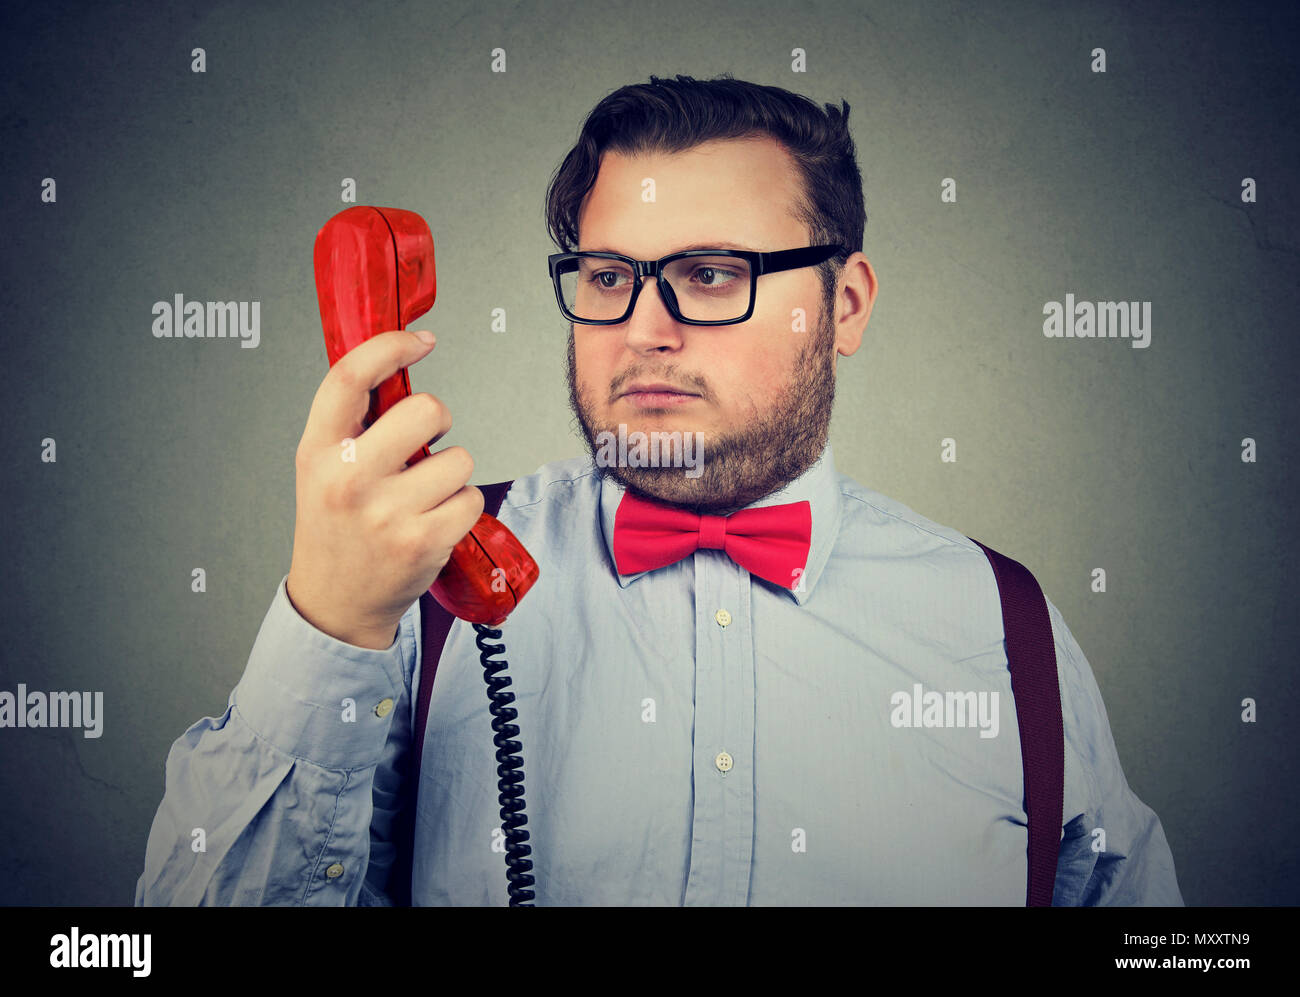 Formal chubby man in bow tie and glasses looking at handset in doubt and misunderstanding on gray - Stock Image